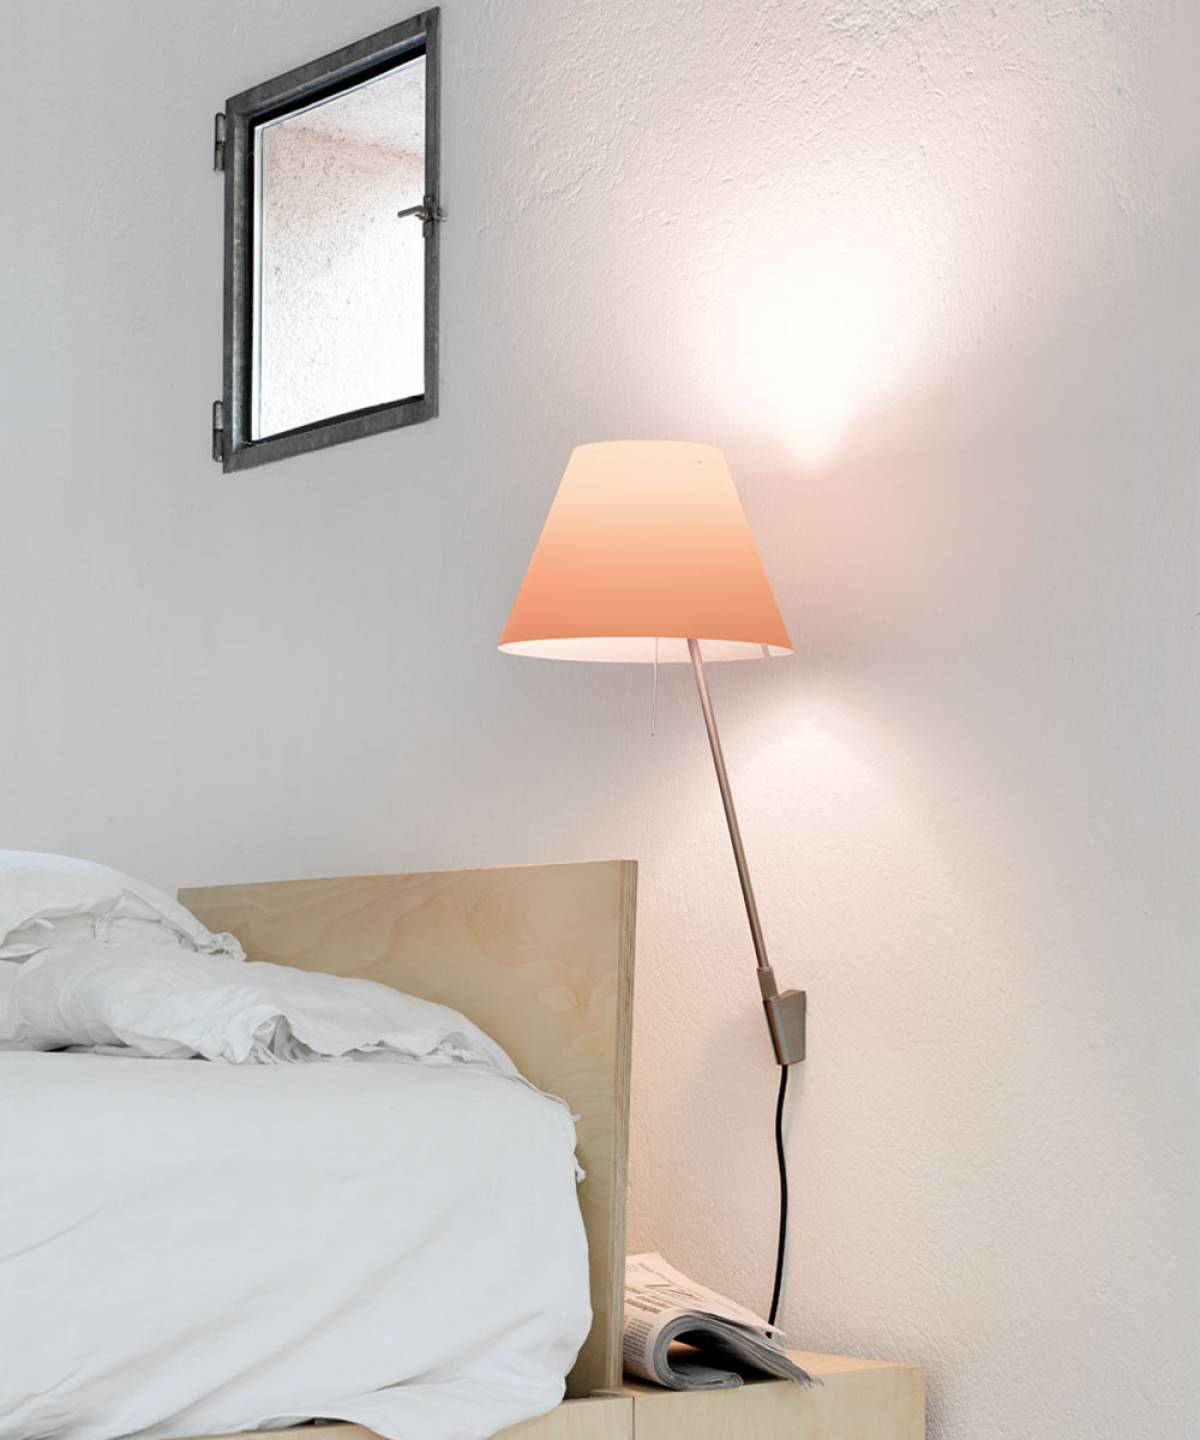 1 Costanzina wall lamp Luceplan